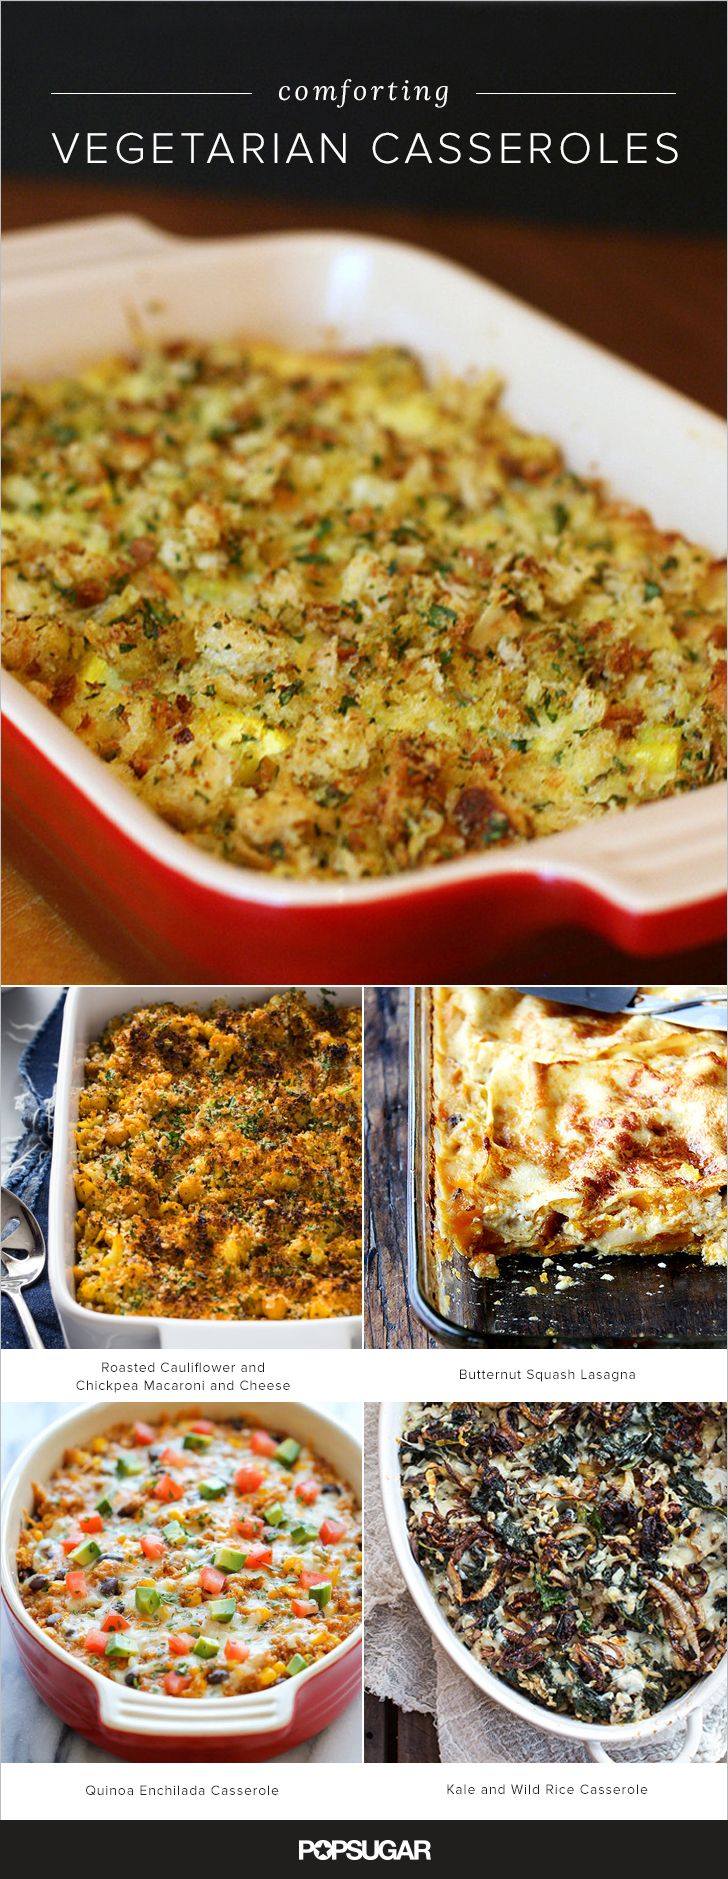 Here we've rounded up 21 terrific casserole recipes that are comforting, delicious, plus vegetarian-friendly; do note that a couple recipes call for chicken stock — to make those vegetarian, simply substitute vegetable stock.